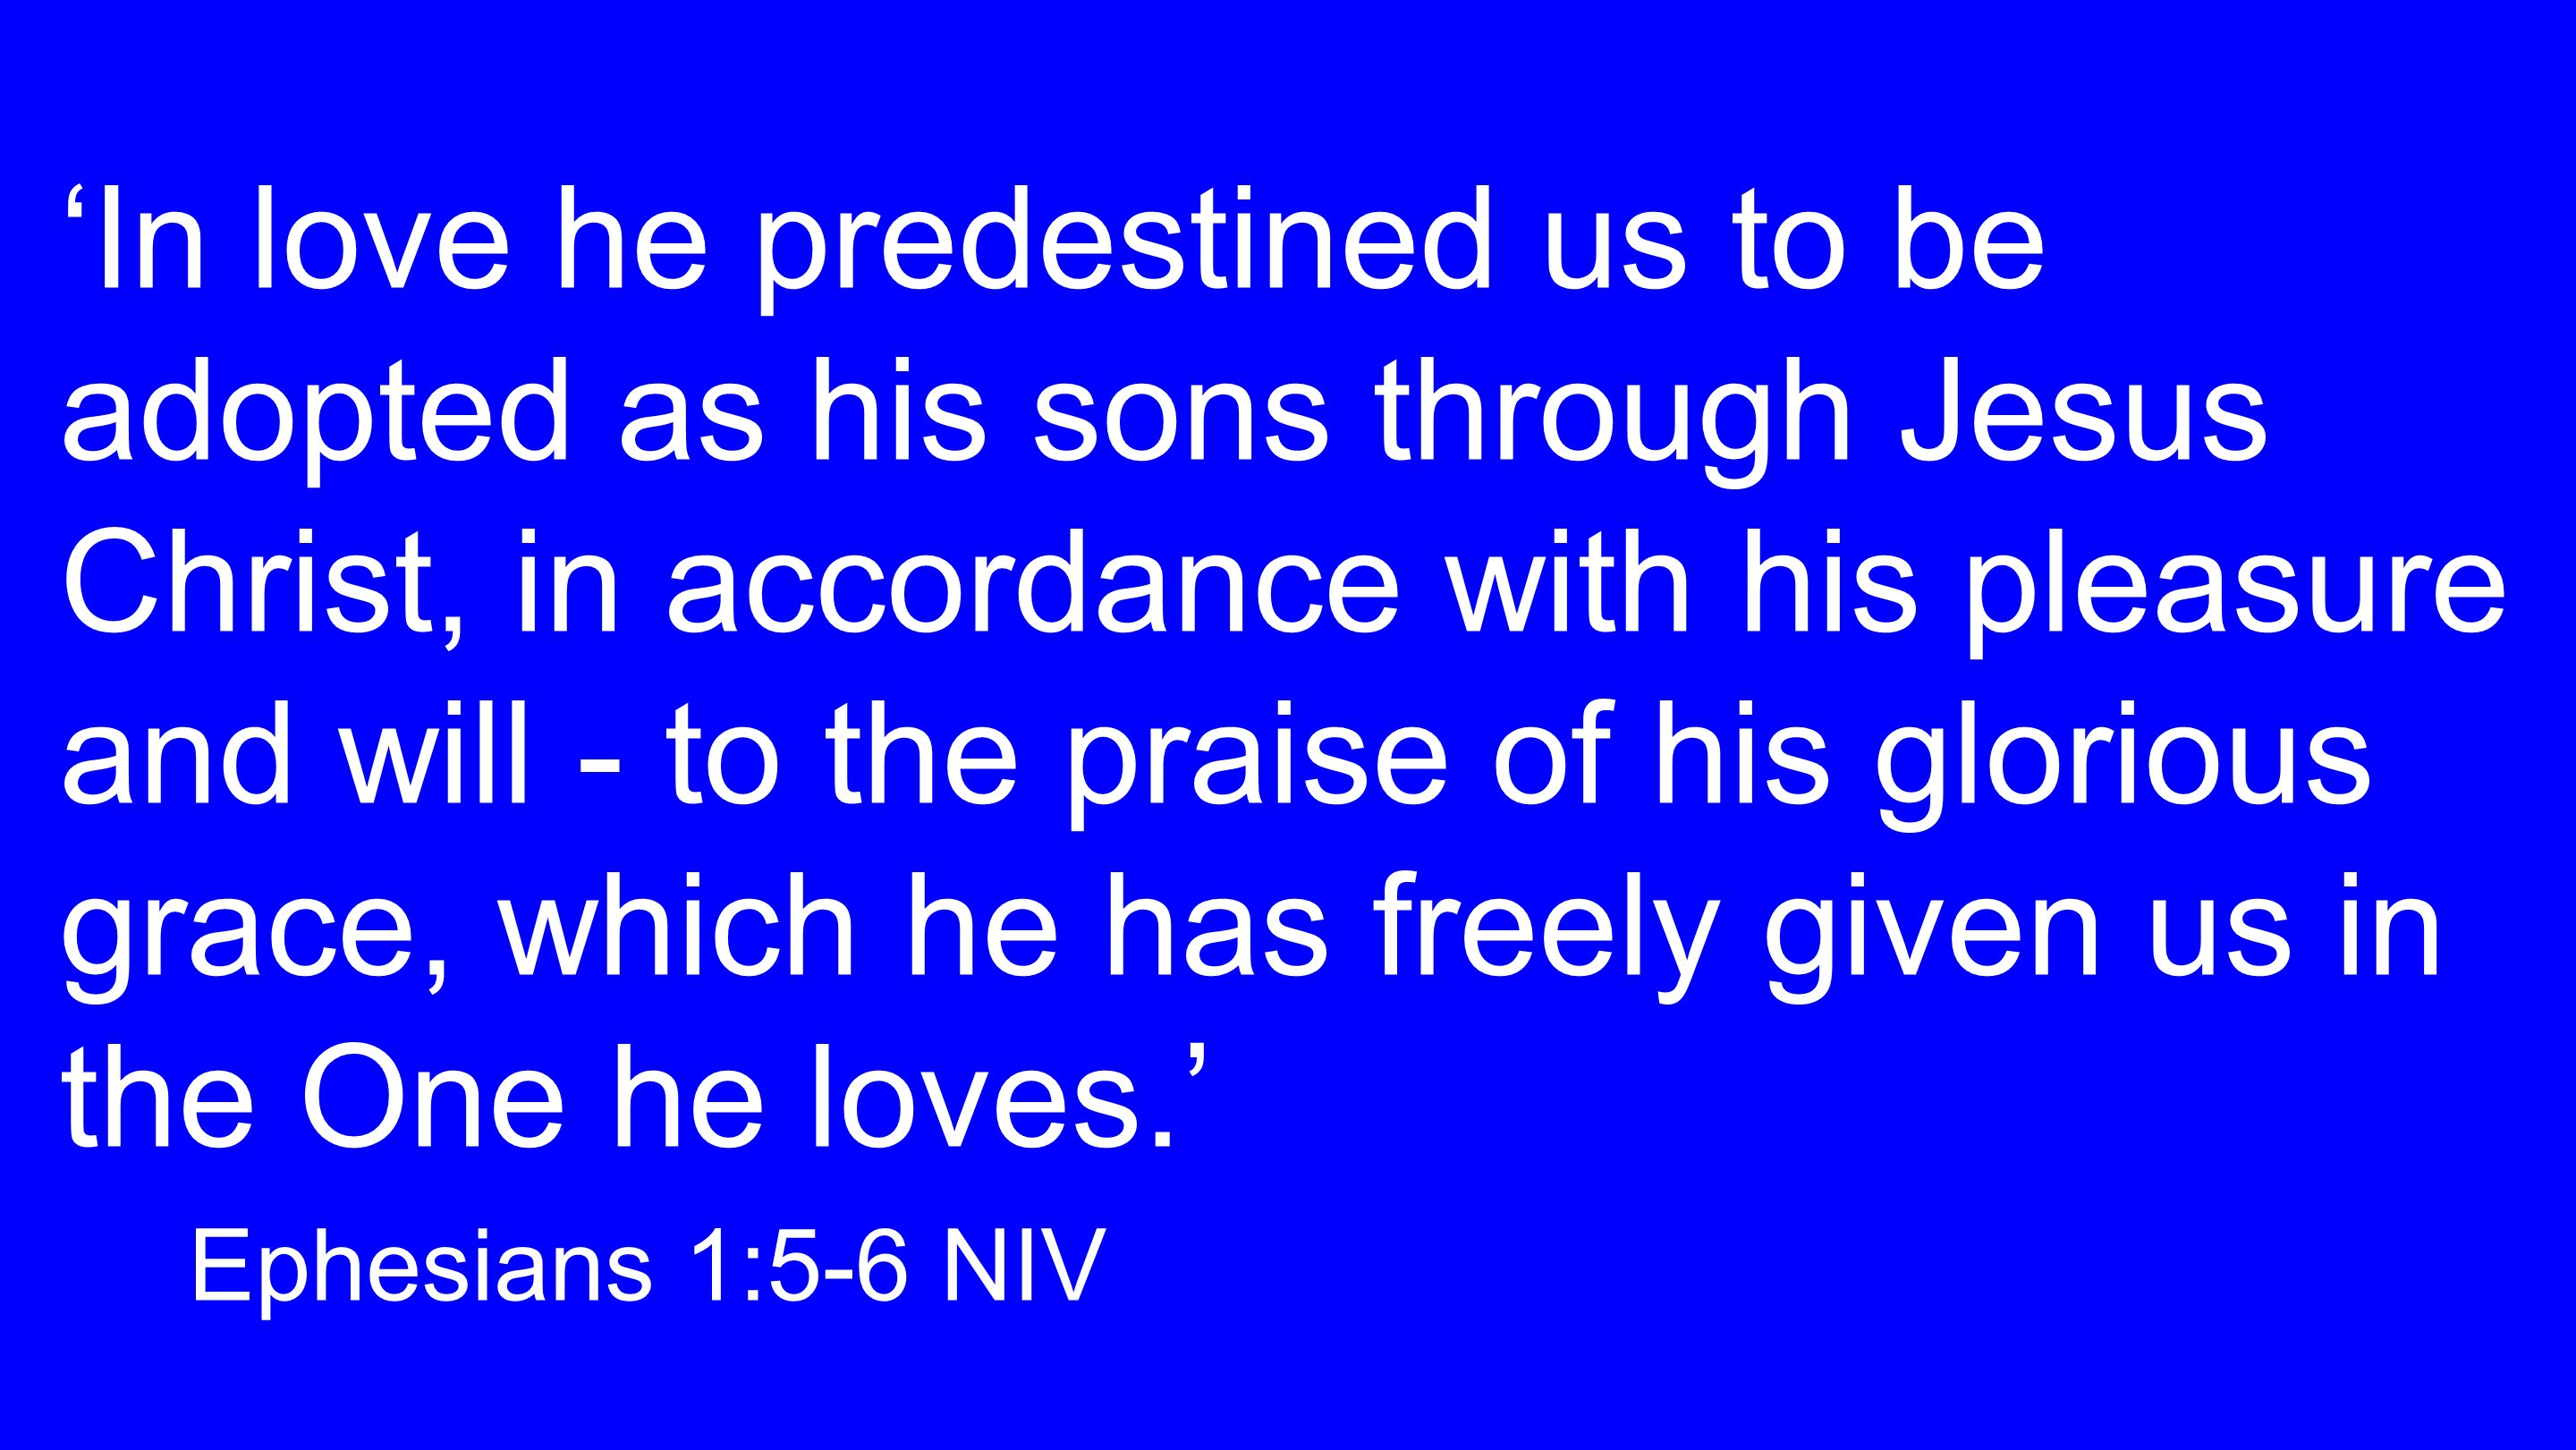 'In love he predestined us to be adopted as his sons through Jesus Christ, in accordance with his pleasure and will - to the praise of his glorious grace, which he has freely given us in the One he loves.' Ephesians 1:5-6 NIV